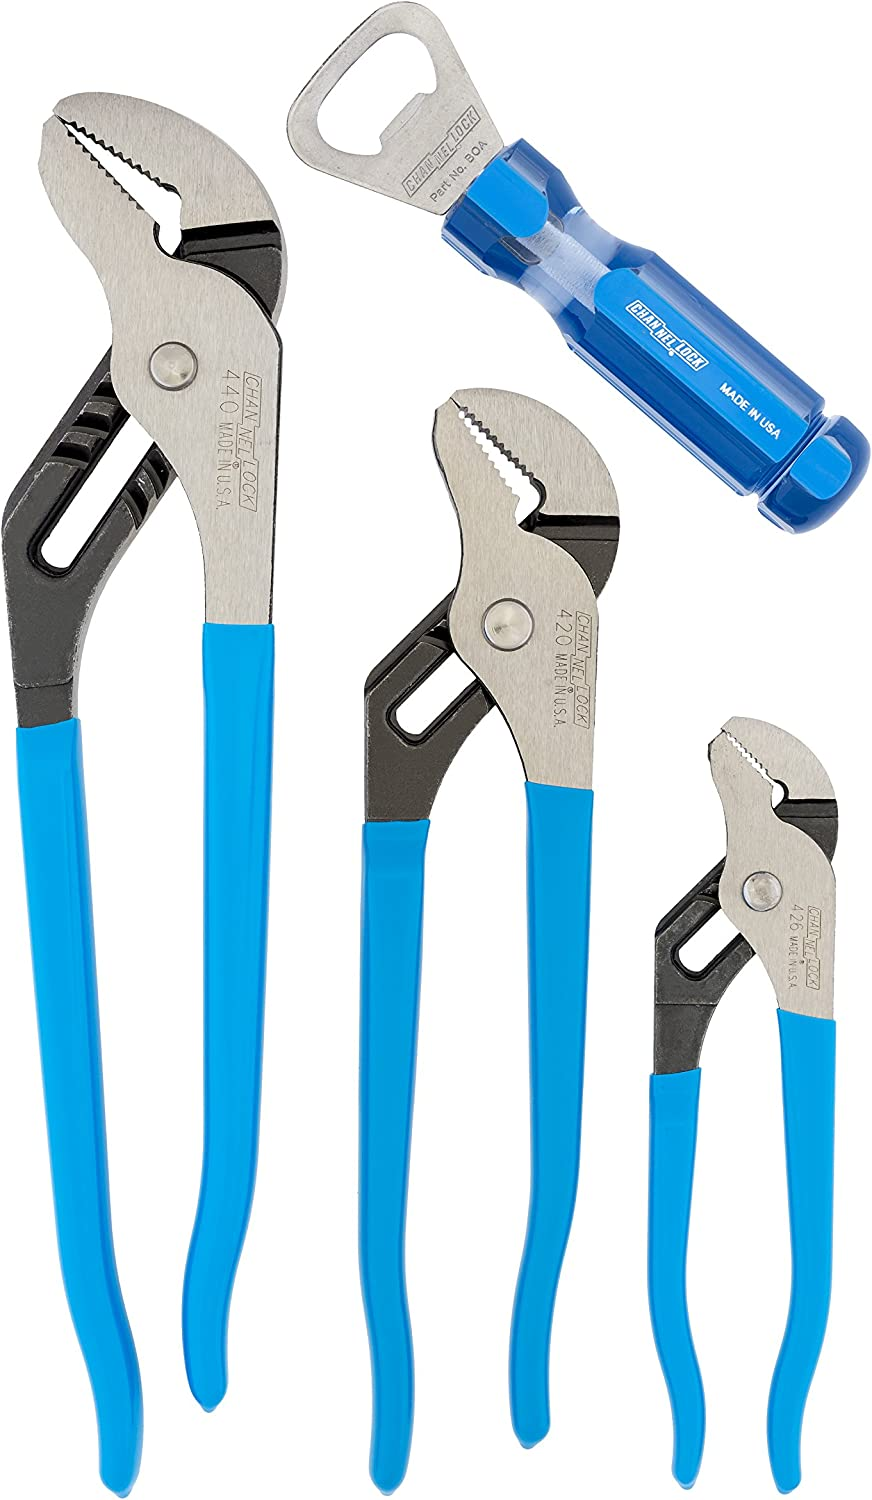 Renewed Channellock 440 12-Inch Tongue and Groove Plier